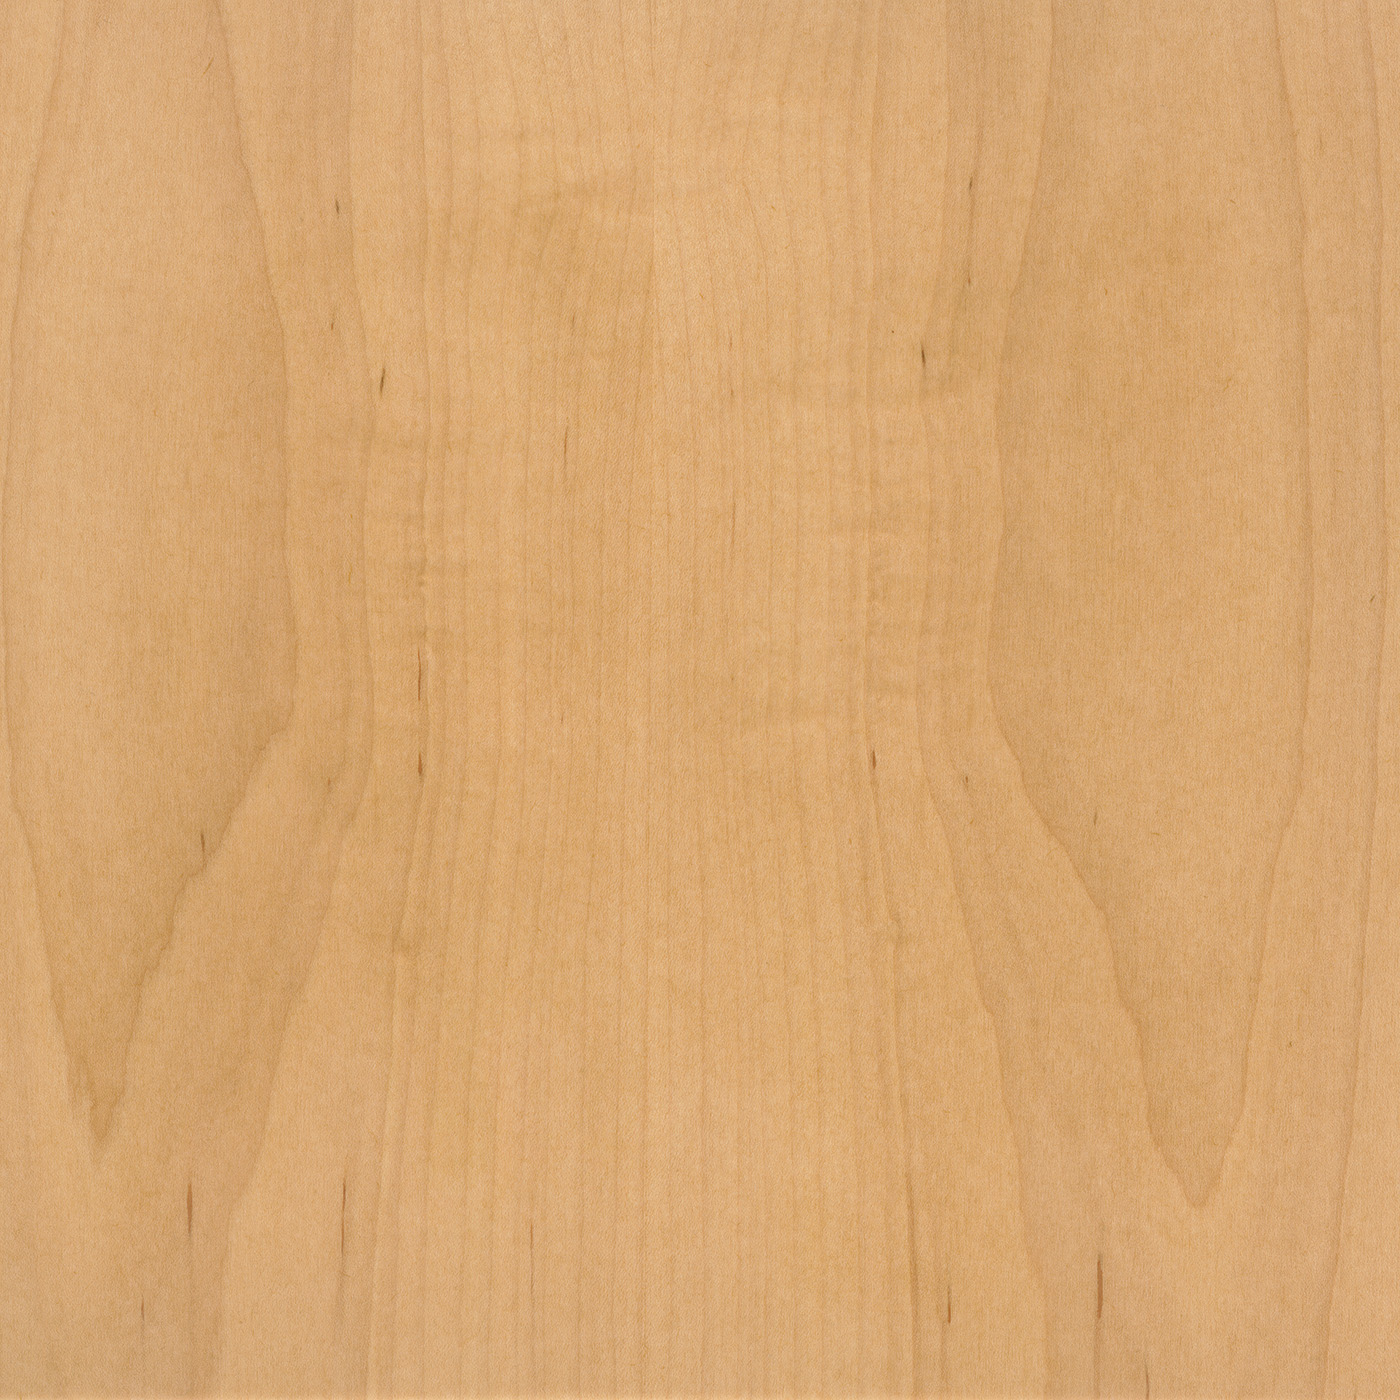 926 Canadian Maple Laminate Countertops